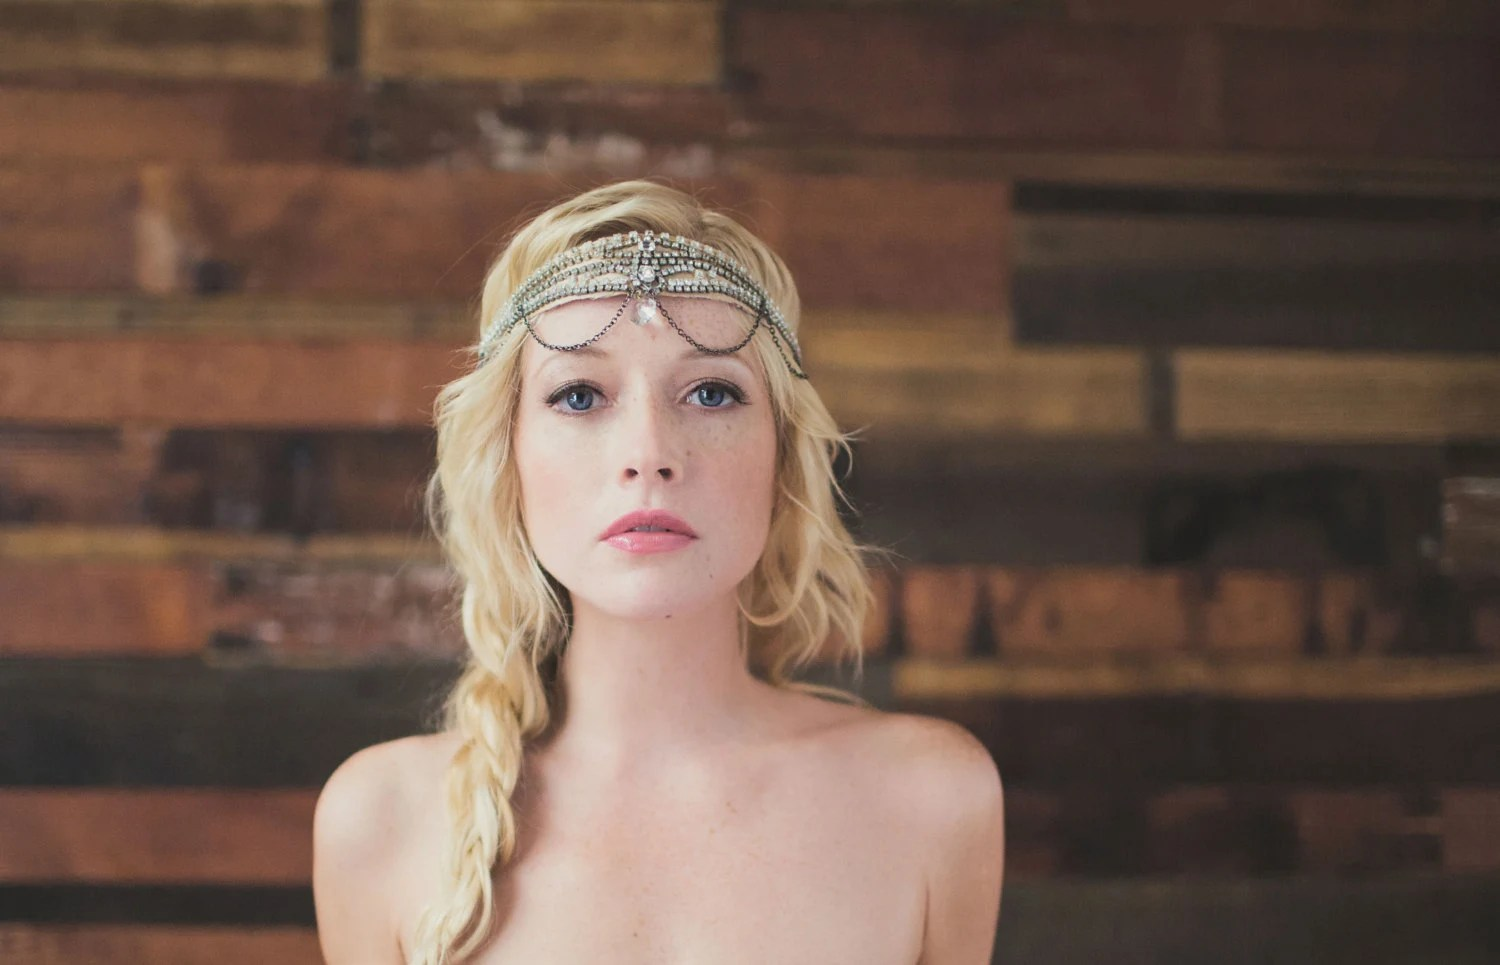 Swan Lake 1920s Style Crystal and Chain Deco/Bridal Headpiece-The Great Gatsby-Art Deco Headpiece-Vintage Bride Wedding